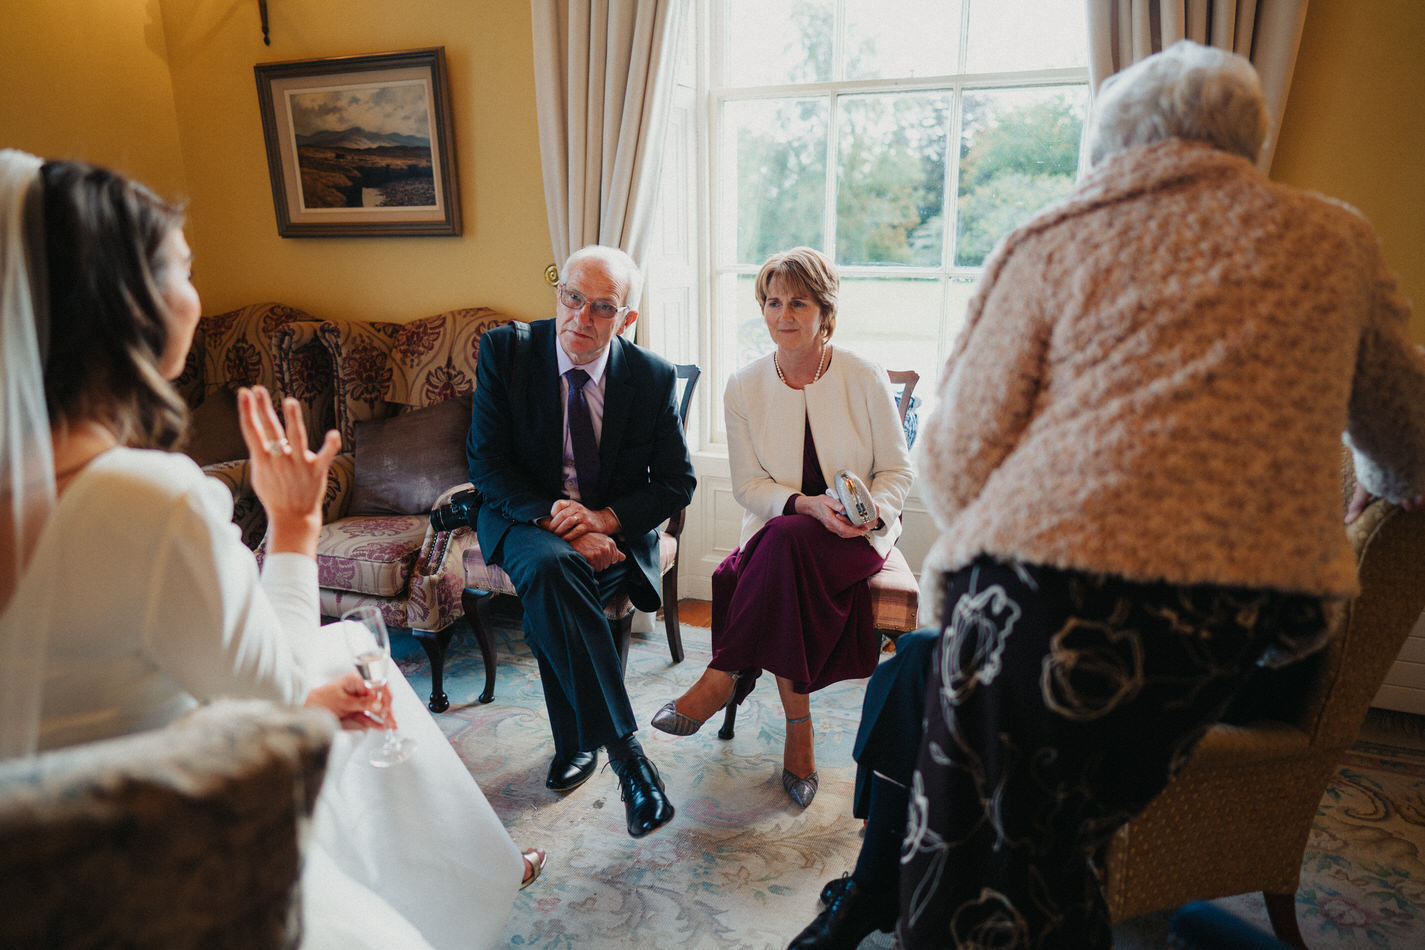 castle-grove-wedding-ireland-145 143